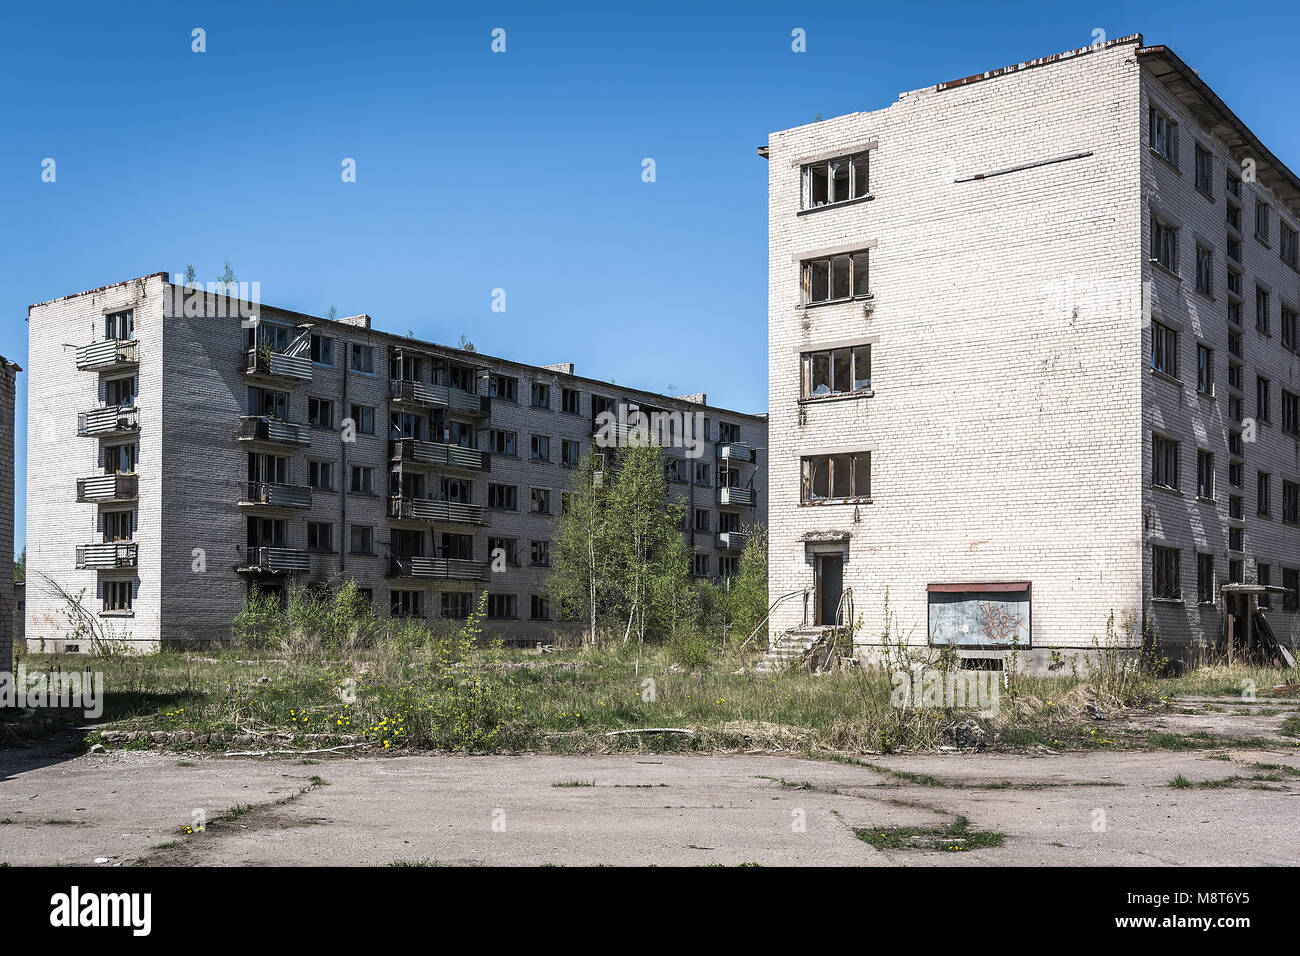 Deserted soviet apartment blocks in Skrunda, Latvia. Former dormitory district in the soviet military base in Skrunda - Stock Image